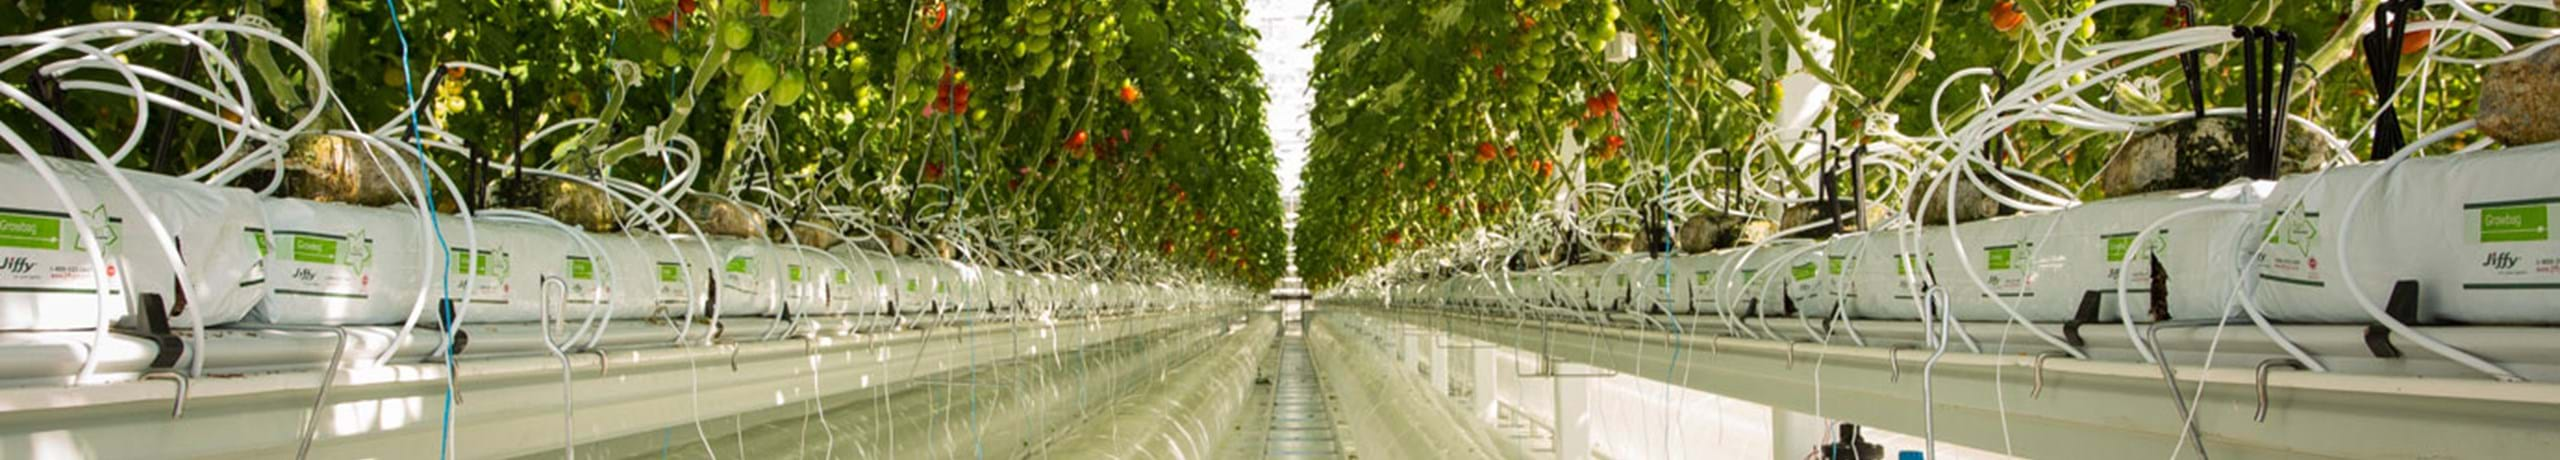 Ultra Clima Greenhouse tomatoes